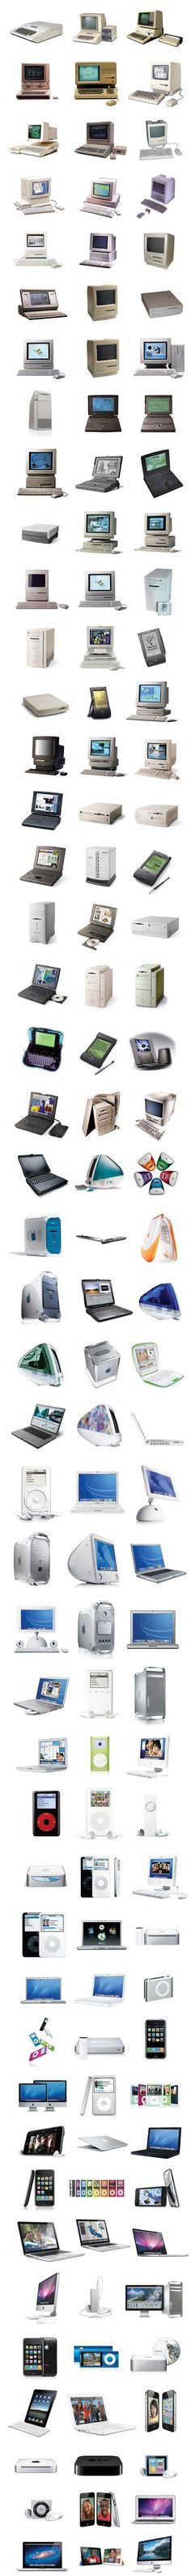 I have owned the classic, performa 636cd, performa 6300av.  I still own the cube, Mac Pro G3, G4, G5, first FireWire iPod, iPod video, Apple TV, MacBook Pro 13, ipad 64 gb lte version. 2x iPhone 4S.